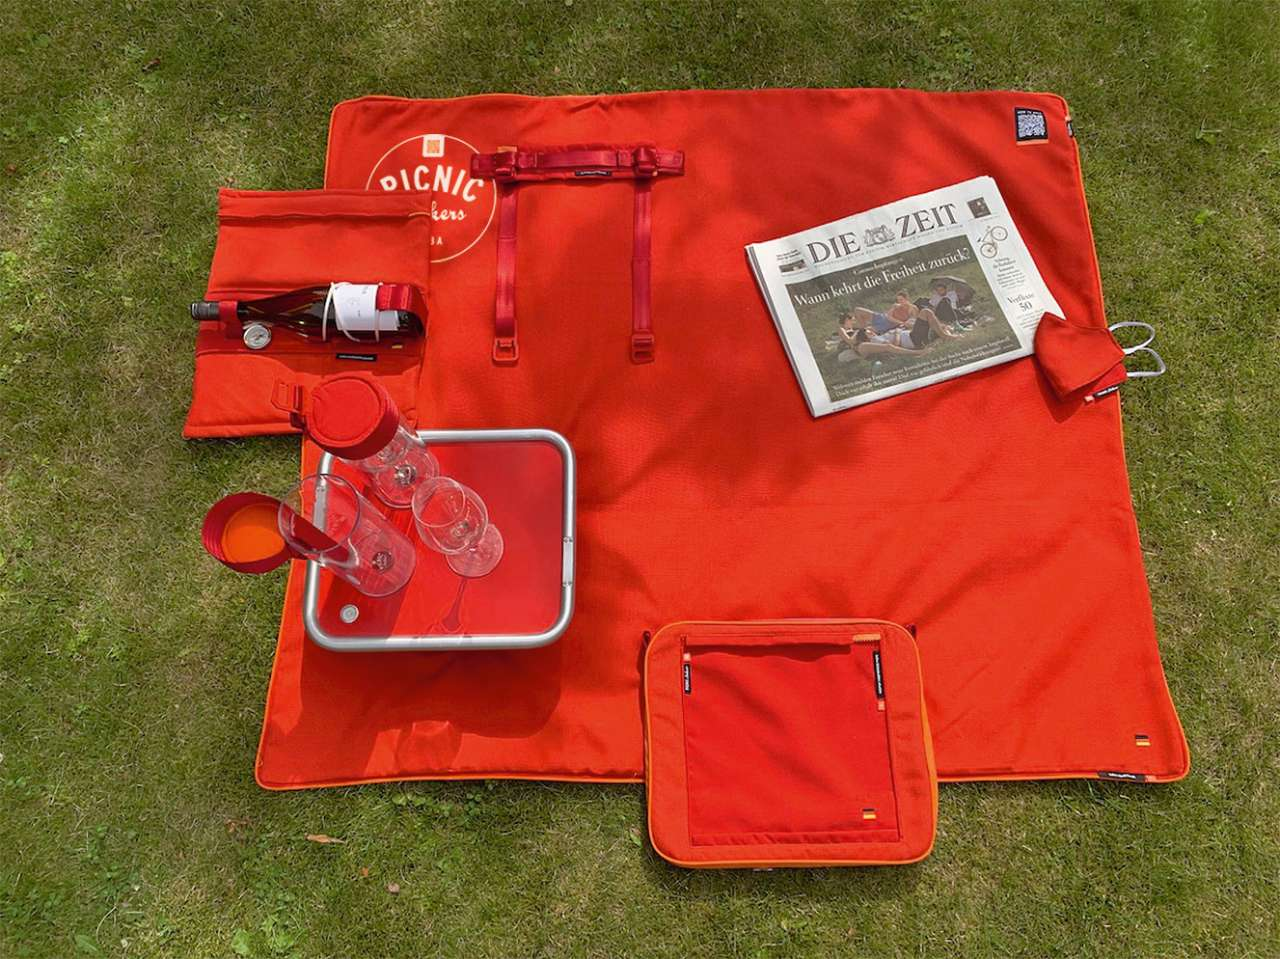 suba nice and smart picnic combination with suba.littlebutler table, winecooler suba.coldbottle and the blanket suba.squarepark.red